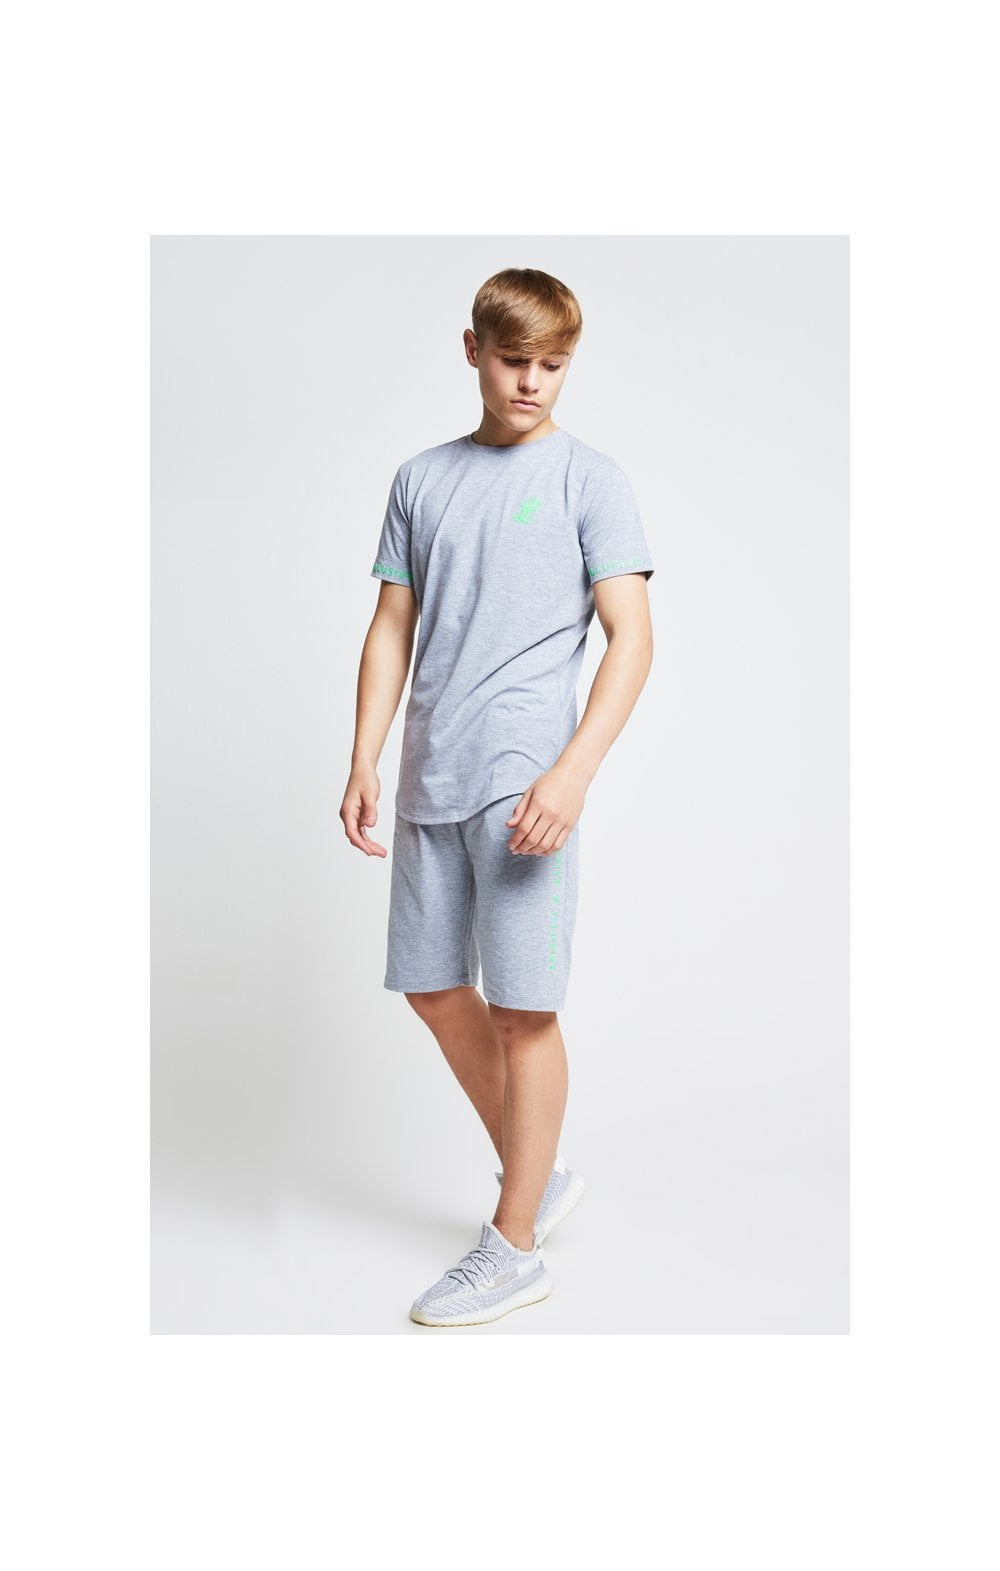 Illusive London Tape Jersey Shorts - Grey & Neon Green (3)